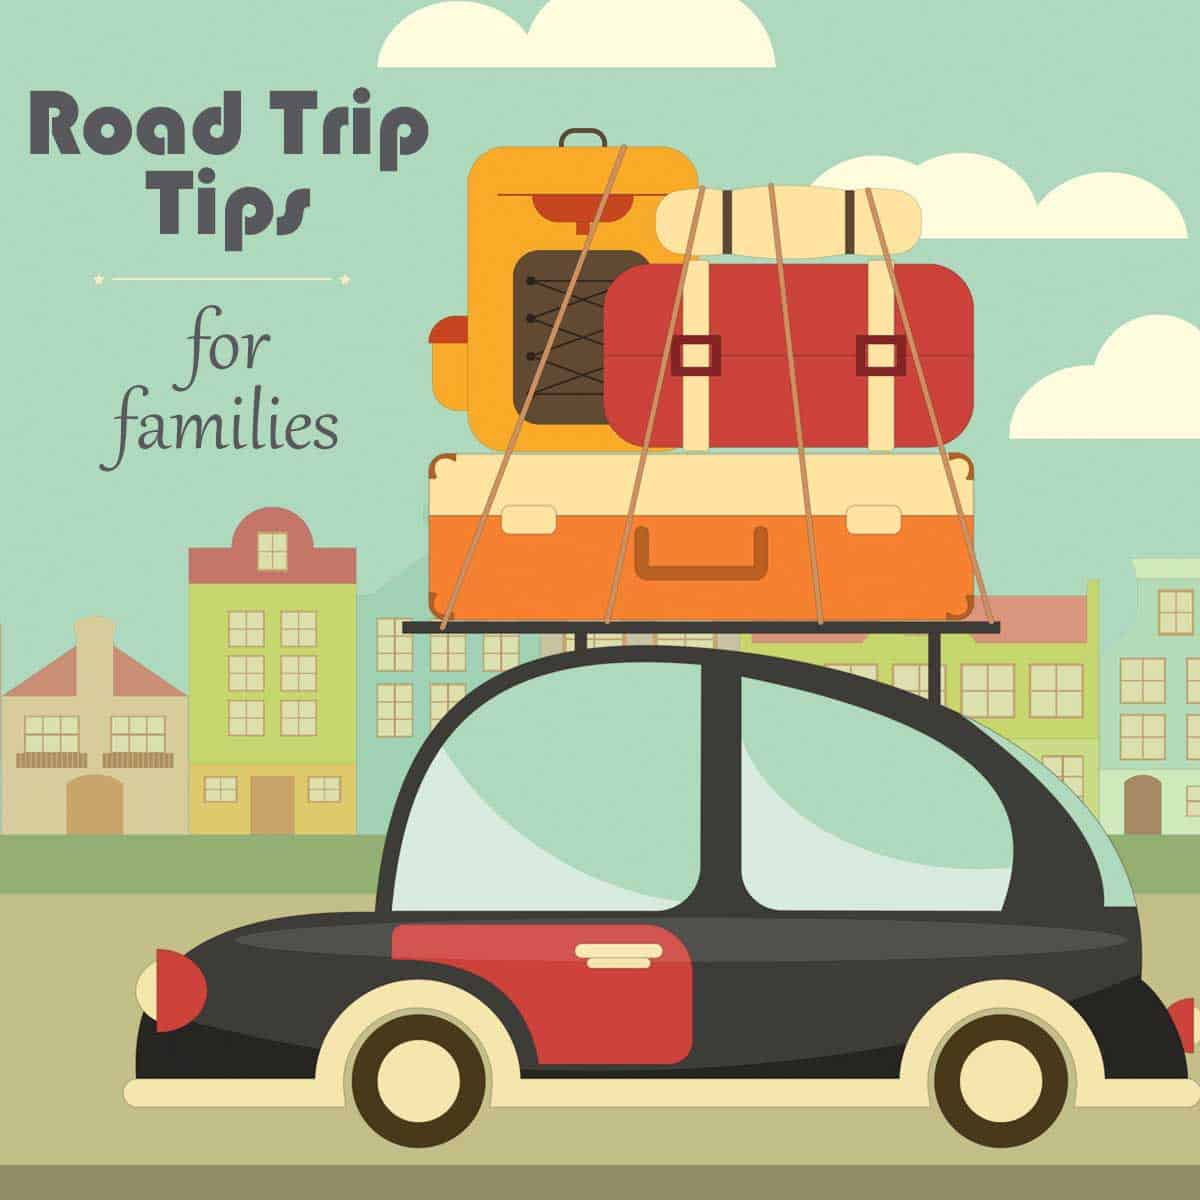 Road Trip: Road Trip Tips For Families